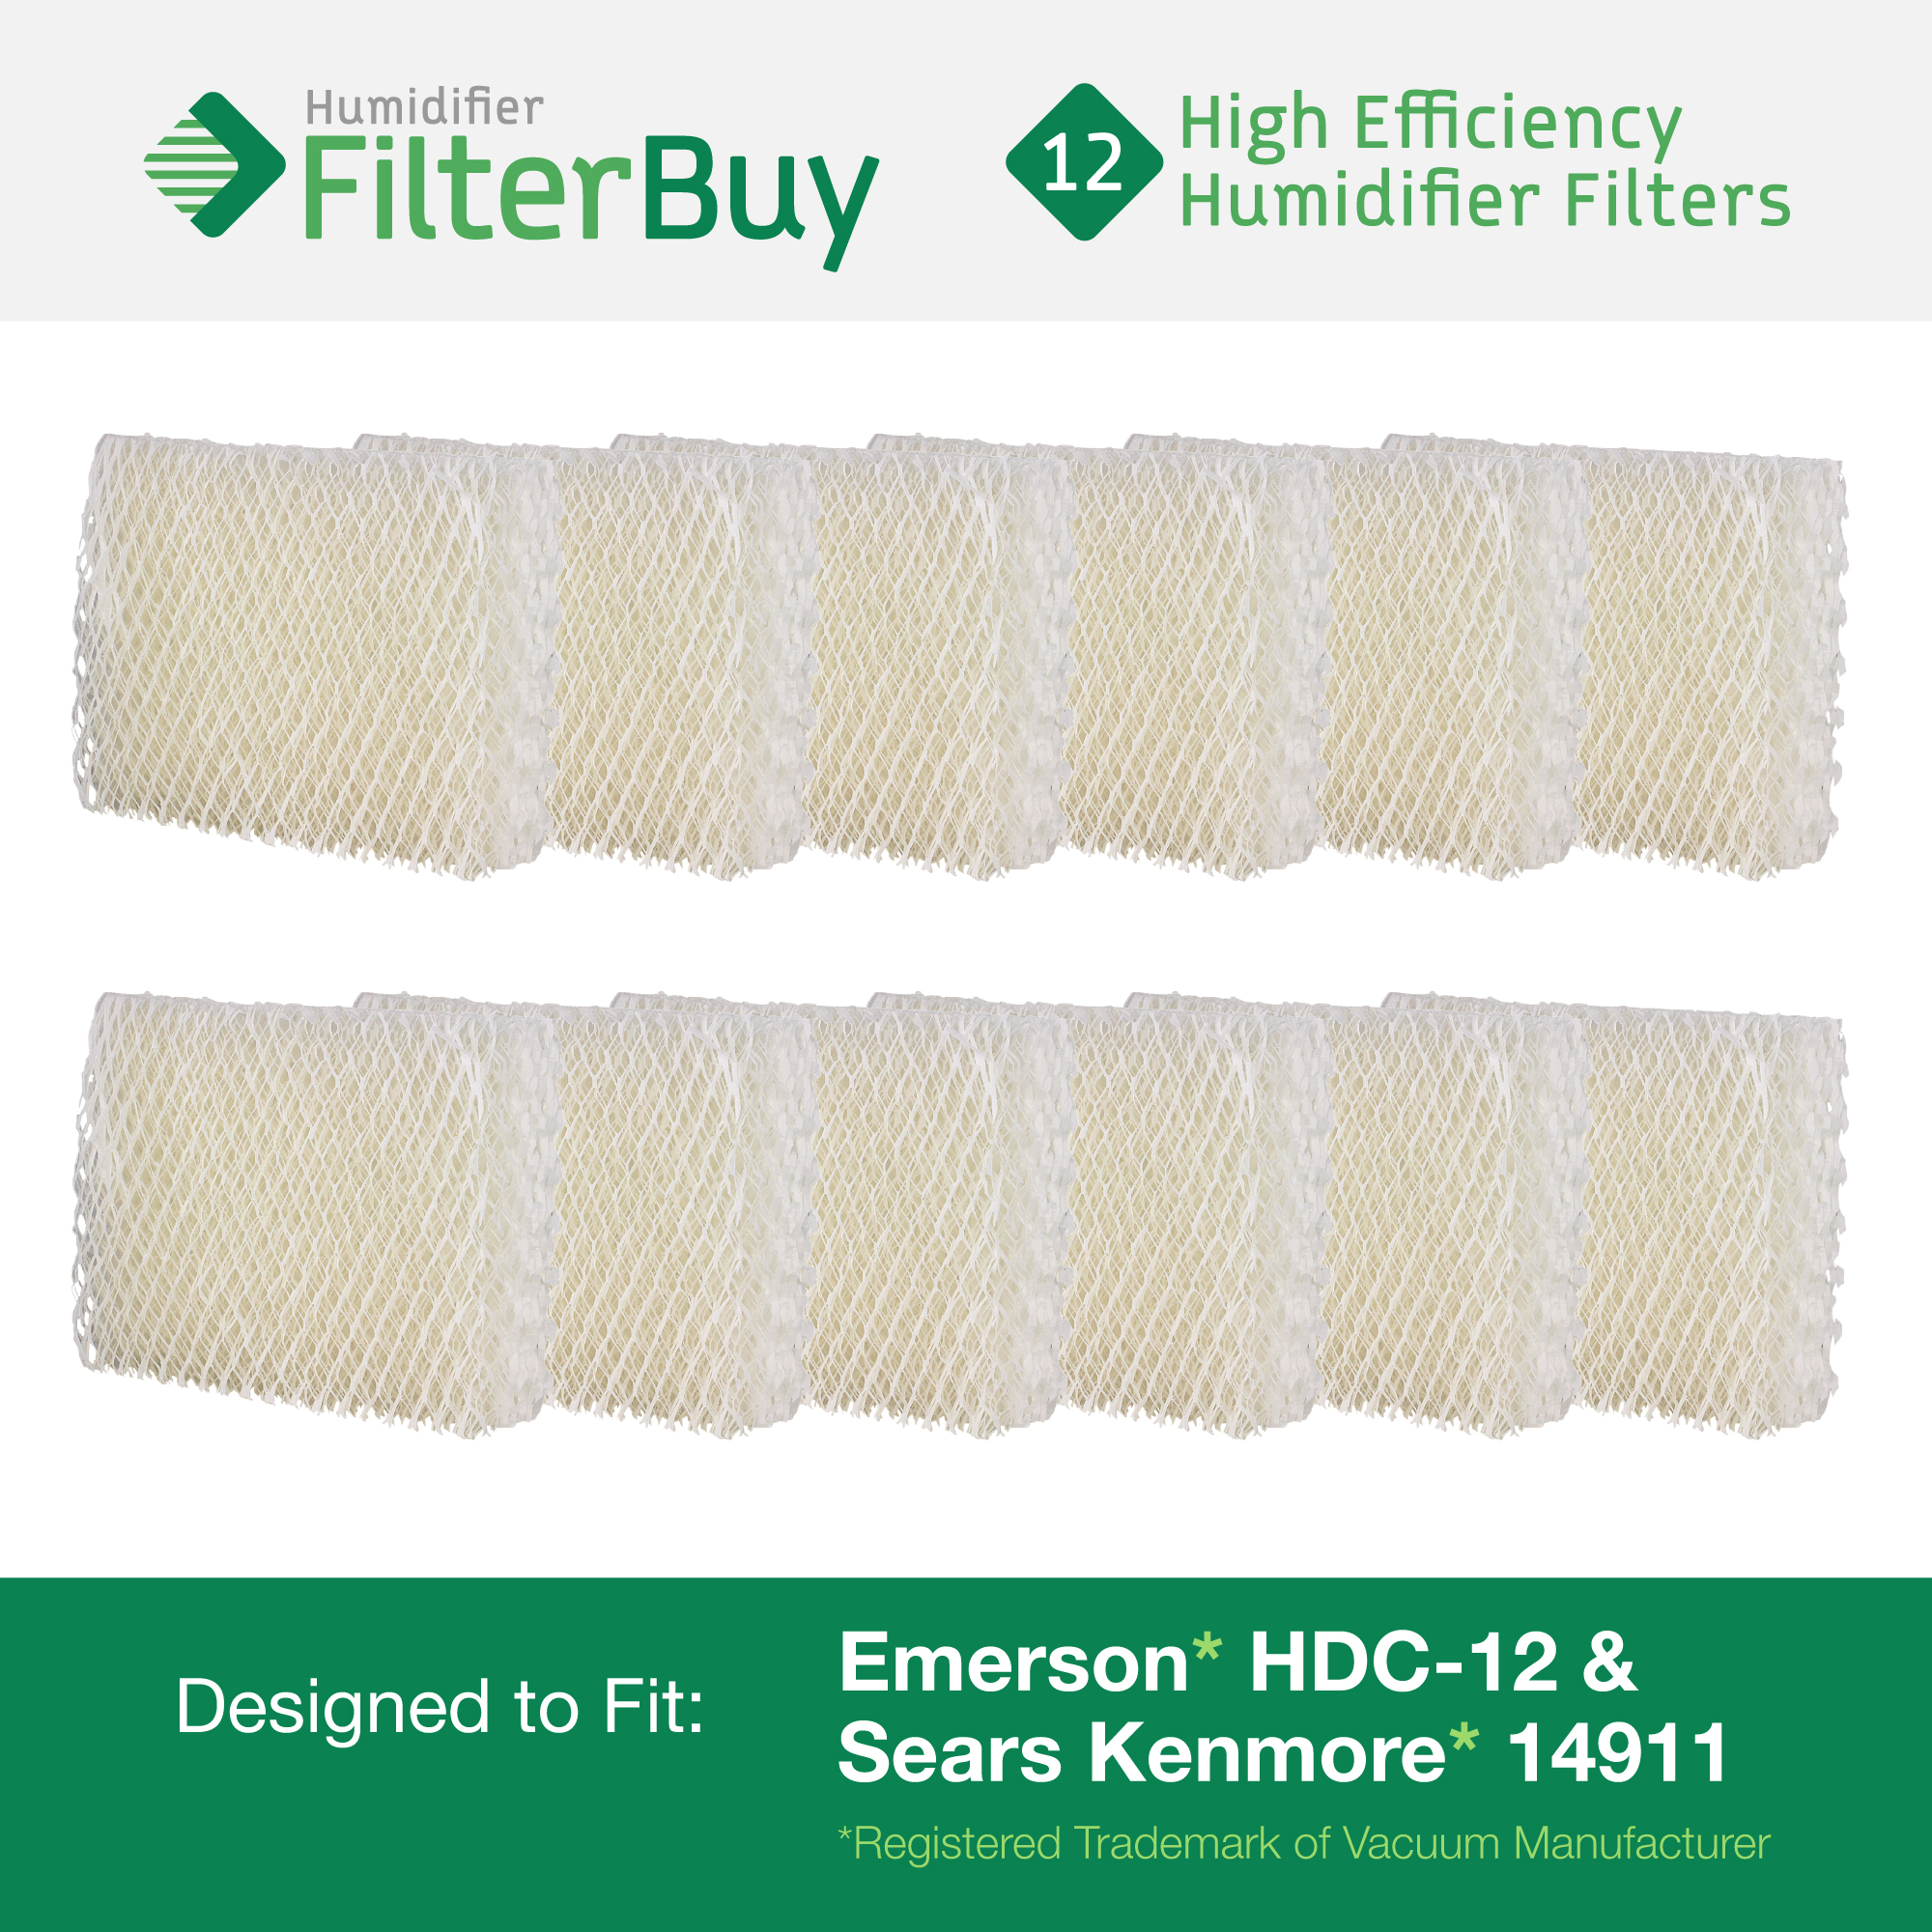 Emerson HDC-12 (HDC12) & Sears Kenmore 14911 Replacement Humidifier Wick Filters. Pack of 12 Filters. Designed by FilterBuy.